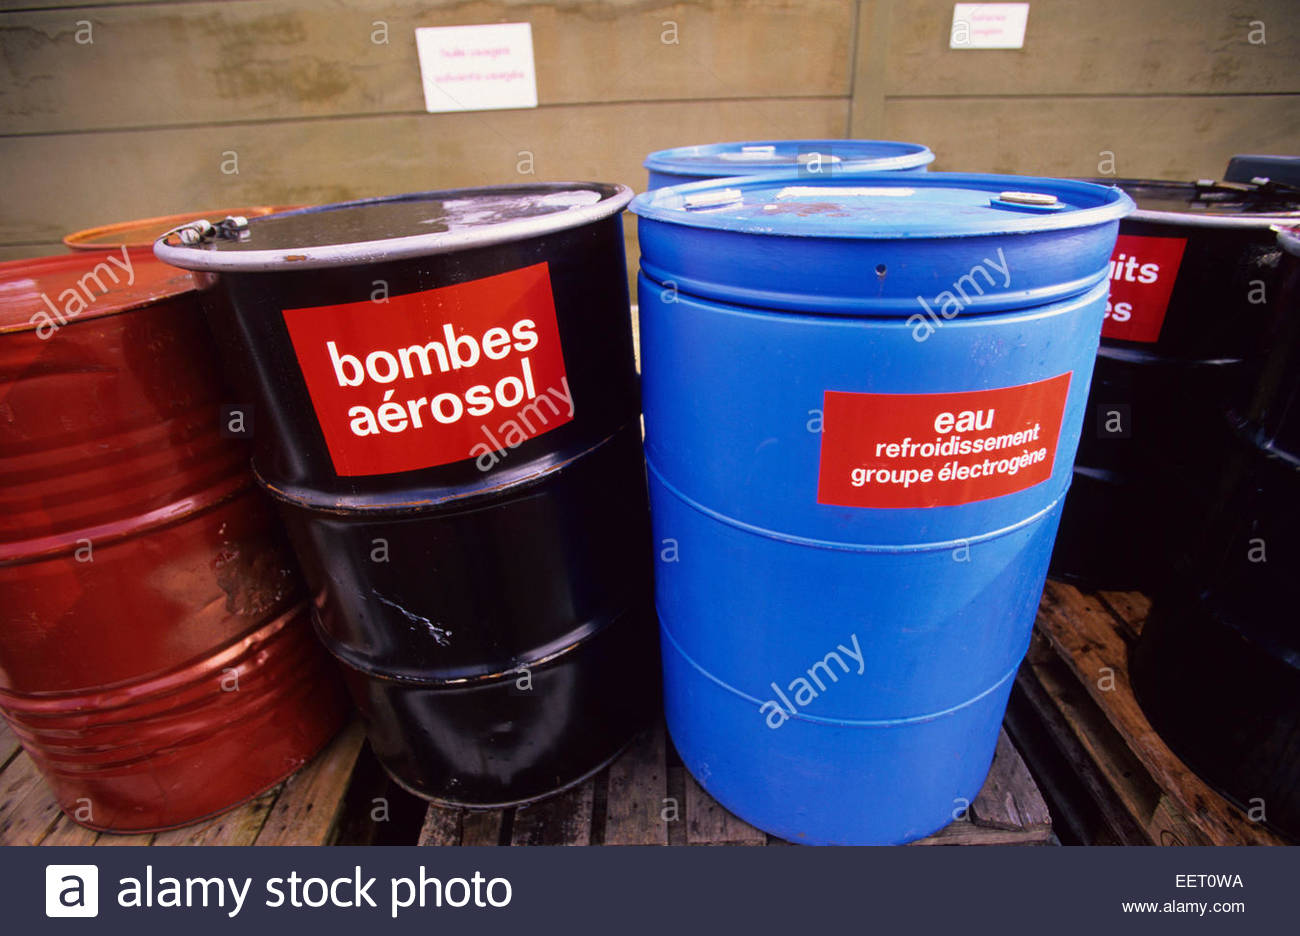 Storage of polluting products, France. - Stock Image